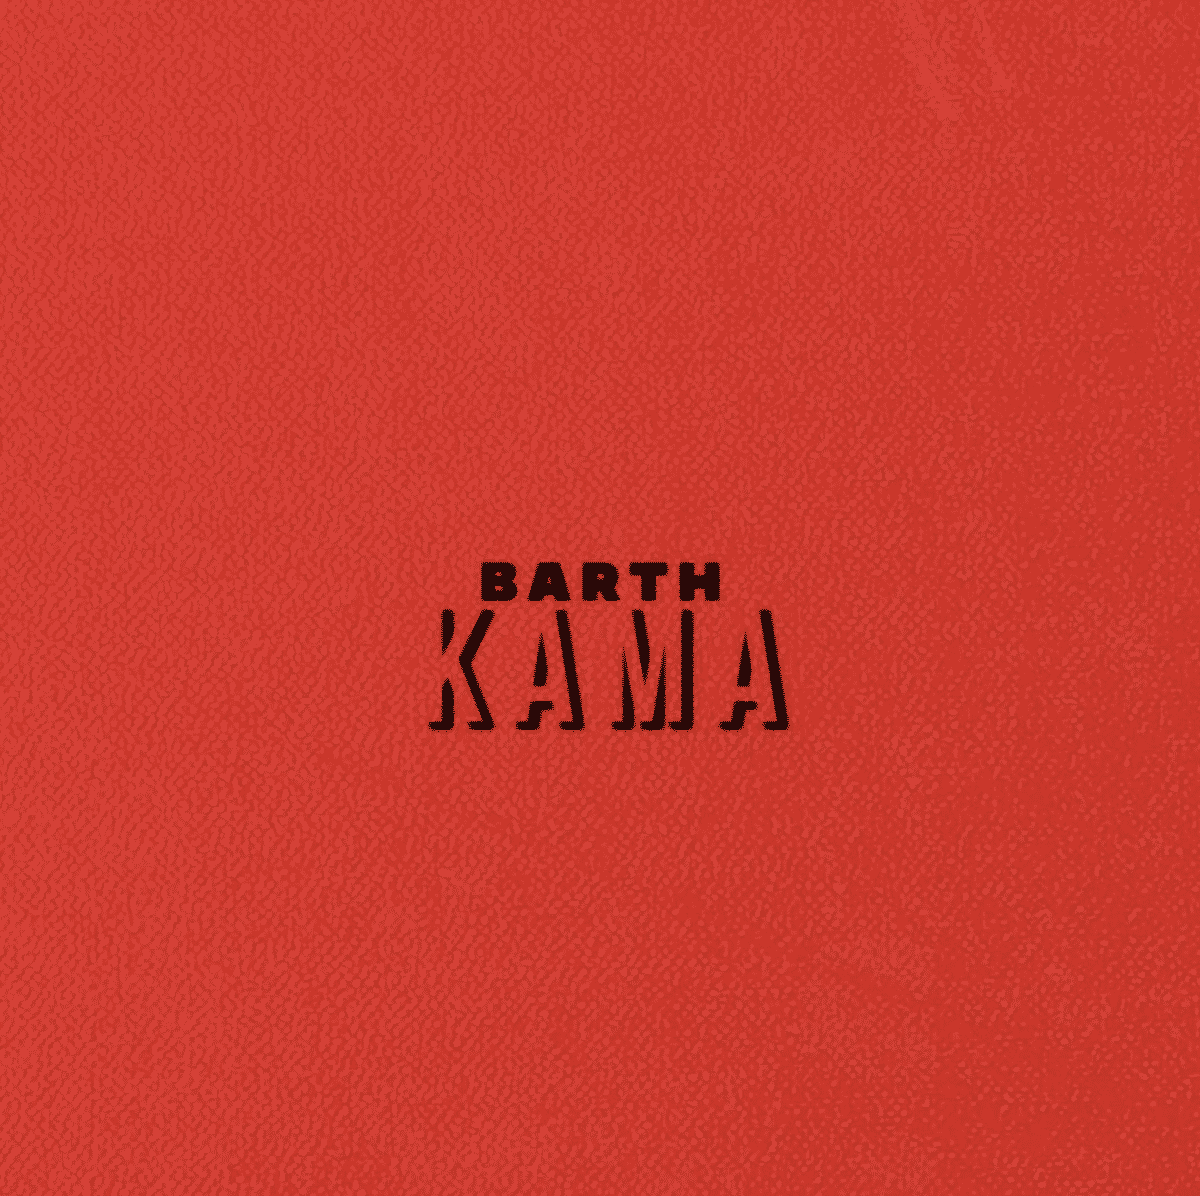 Barth dévoile son nouveau single afro-pop 'Kama""